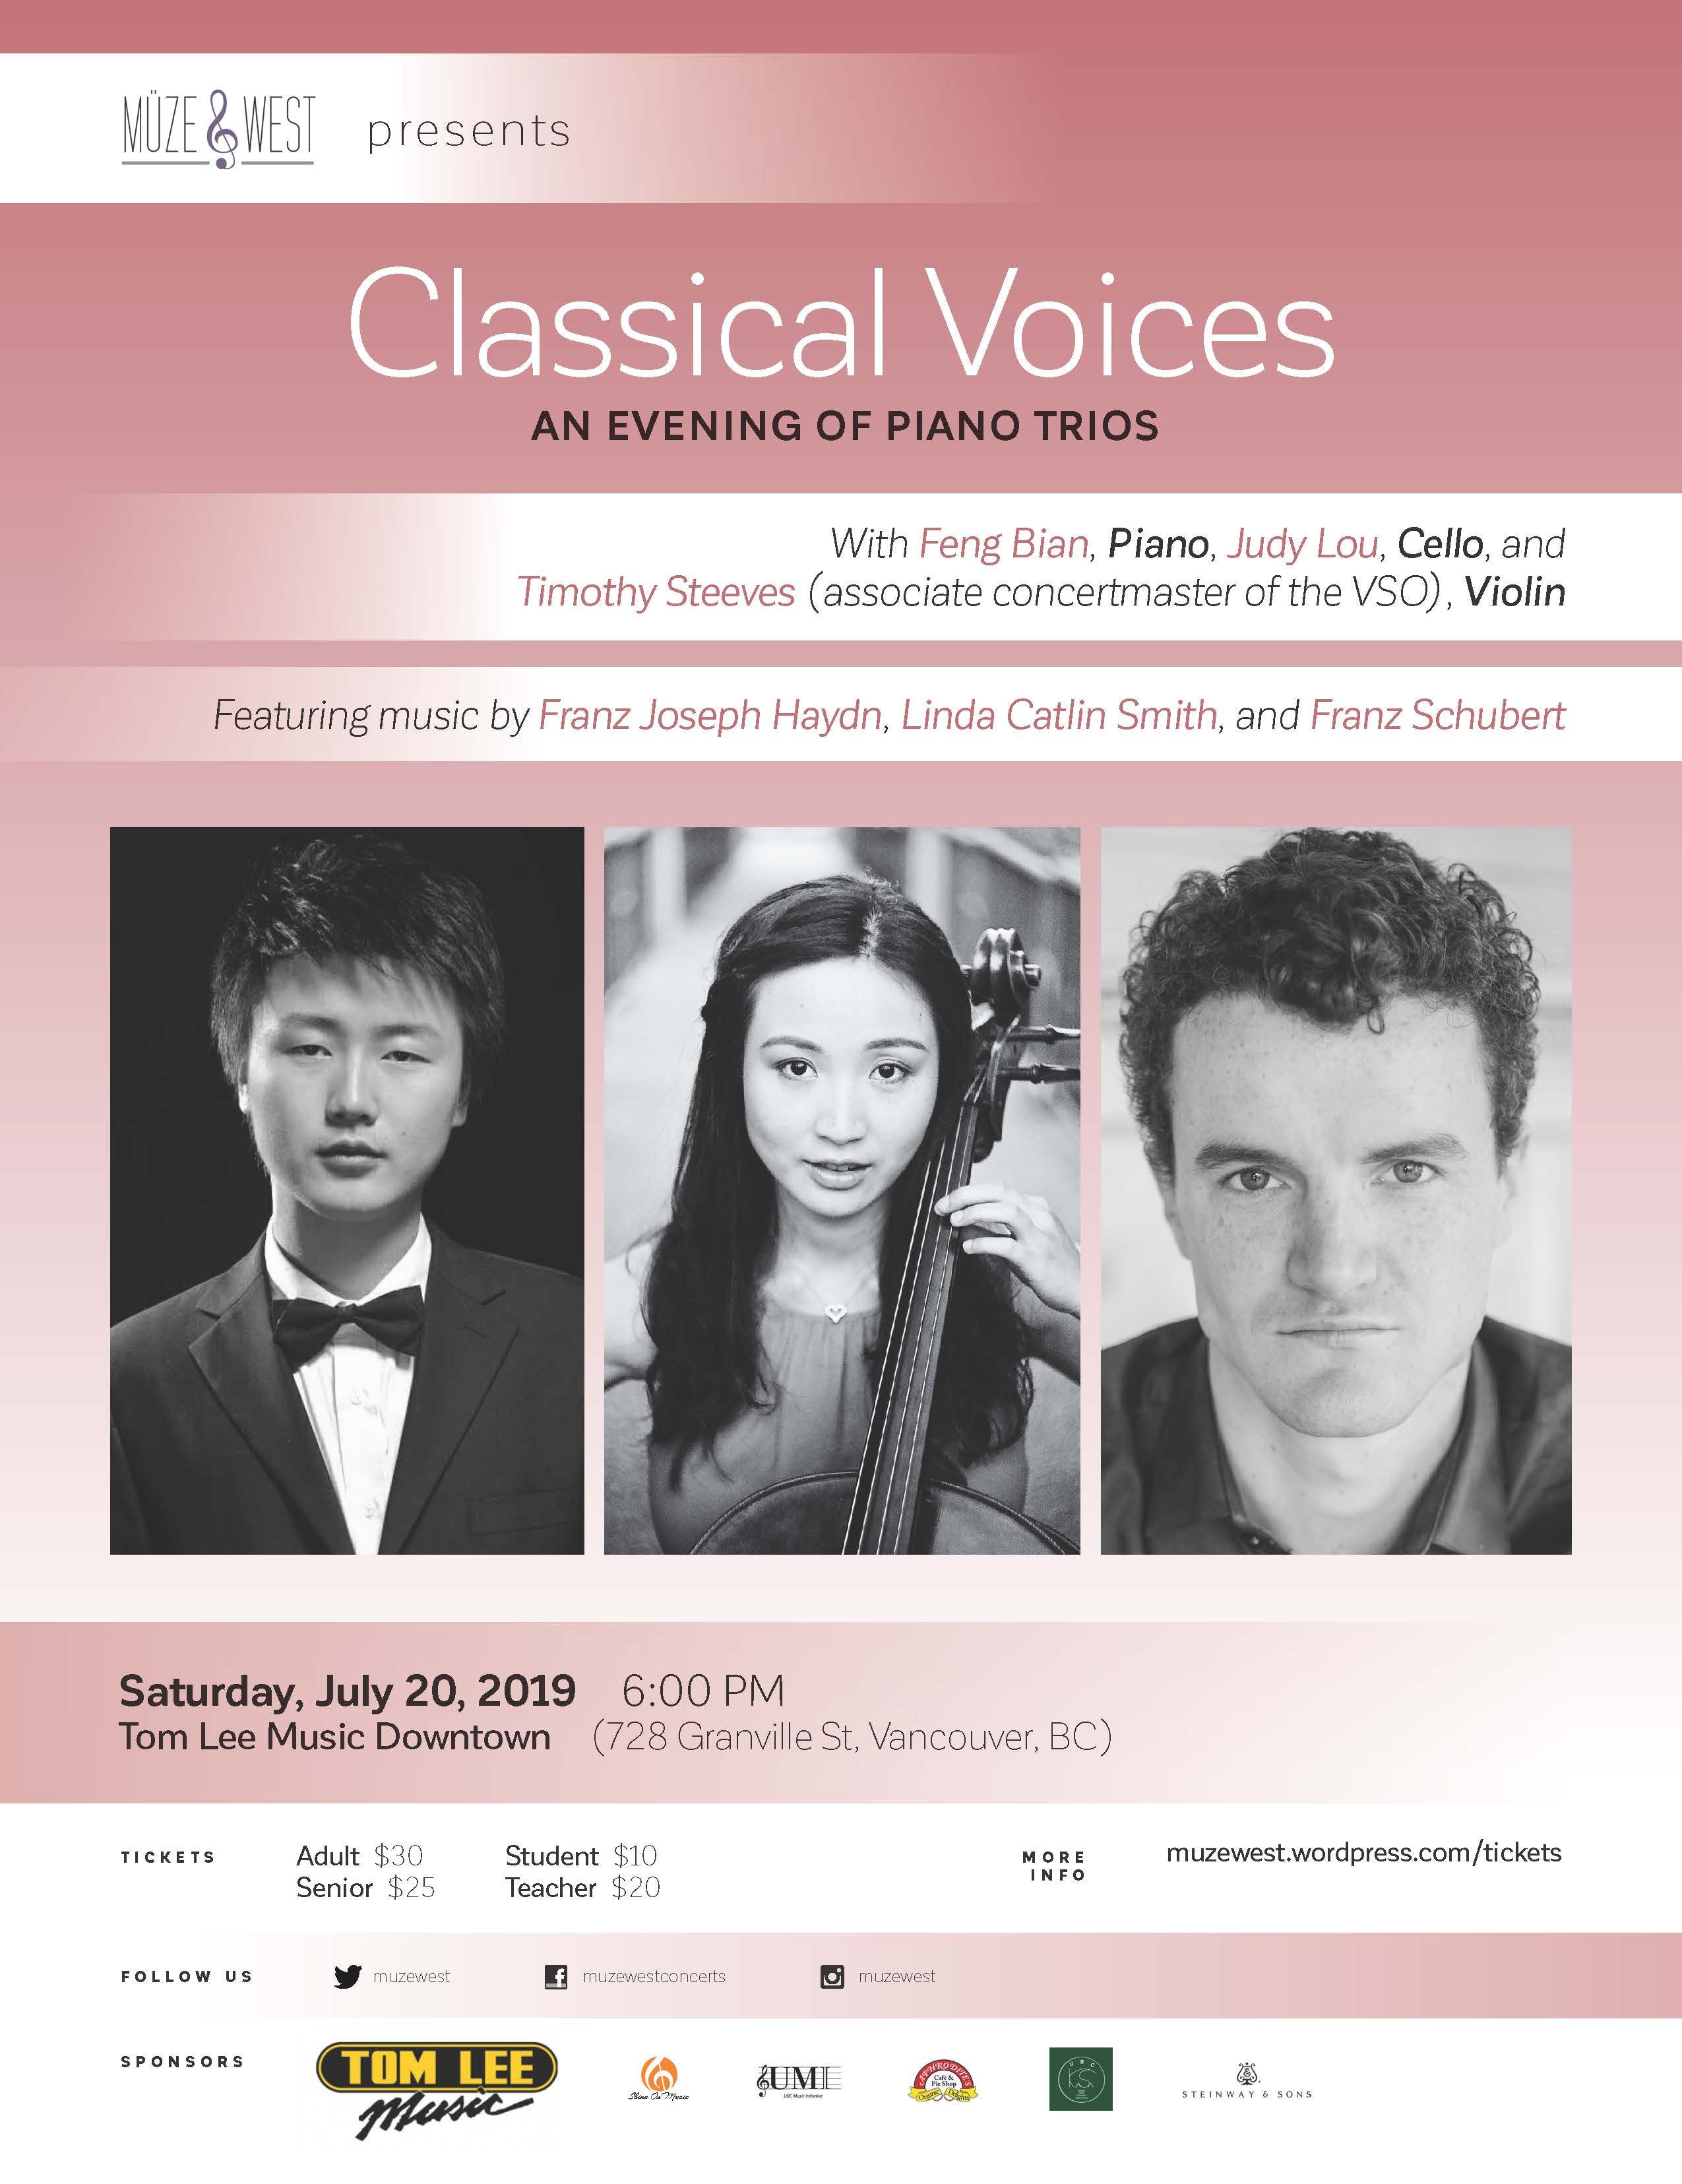 Sat. July 20, 2019 – (18:00) – Piano Trios with Feng Bian, Judy Lou, and VSO associate concertmaster Timothy Steeves